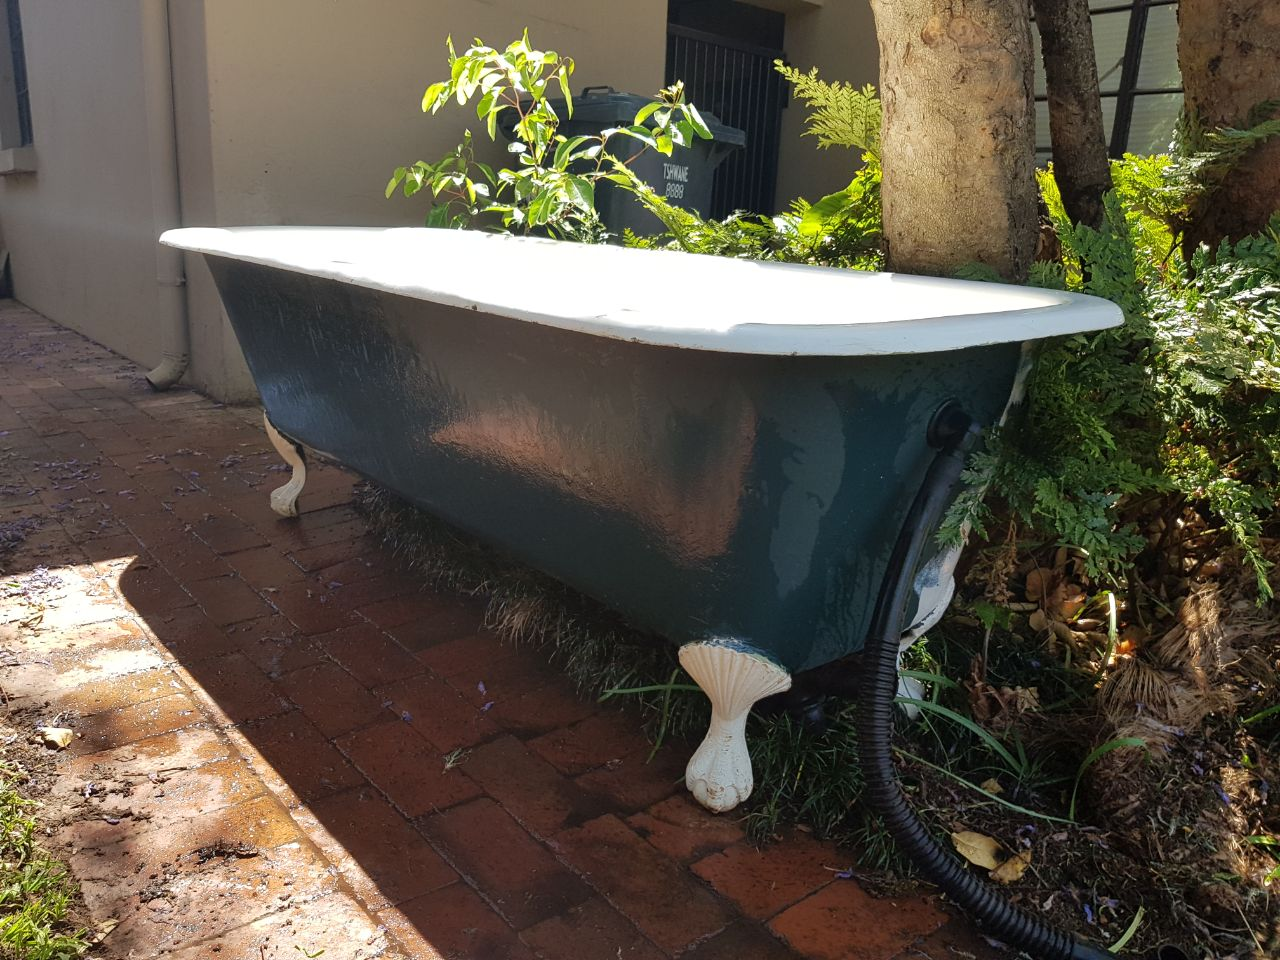 Re-enameld loose standing bath (as new) for SALE